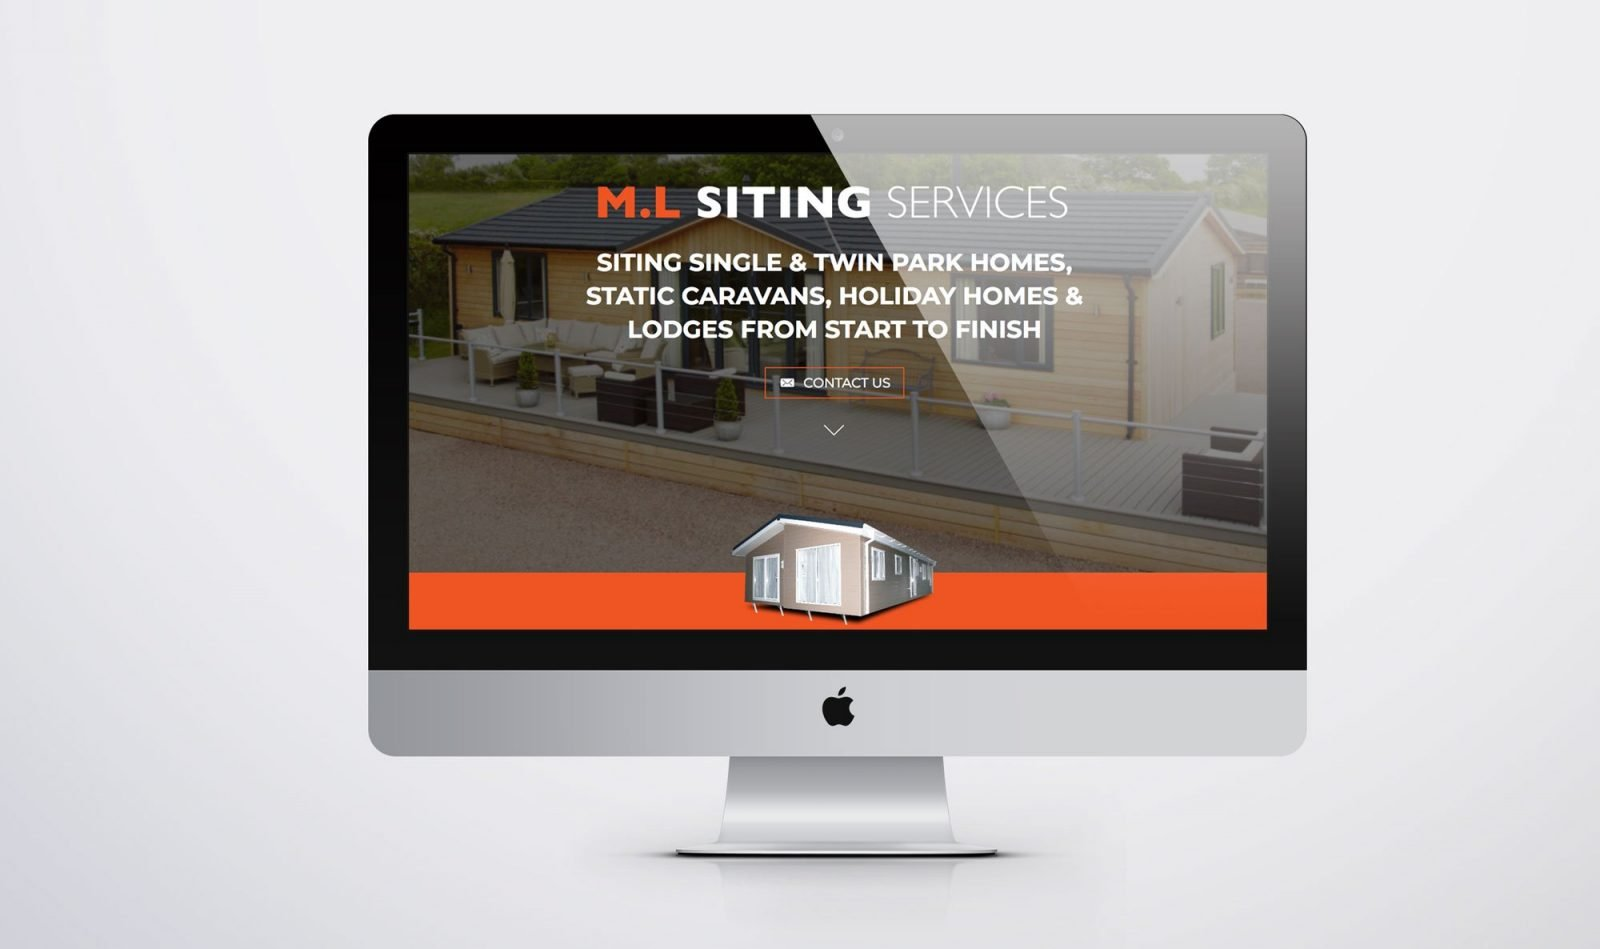 An computer showing the home page of the website design for M.L Siting Services